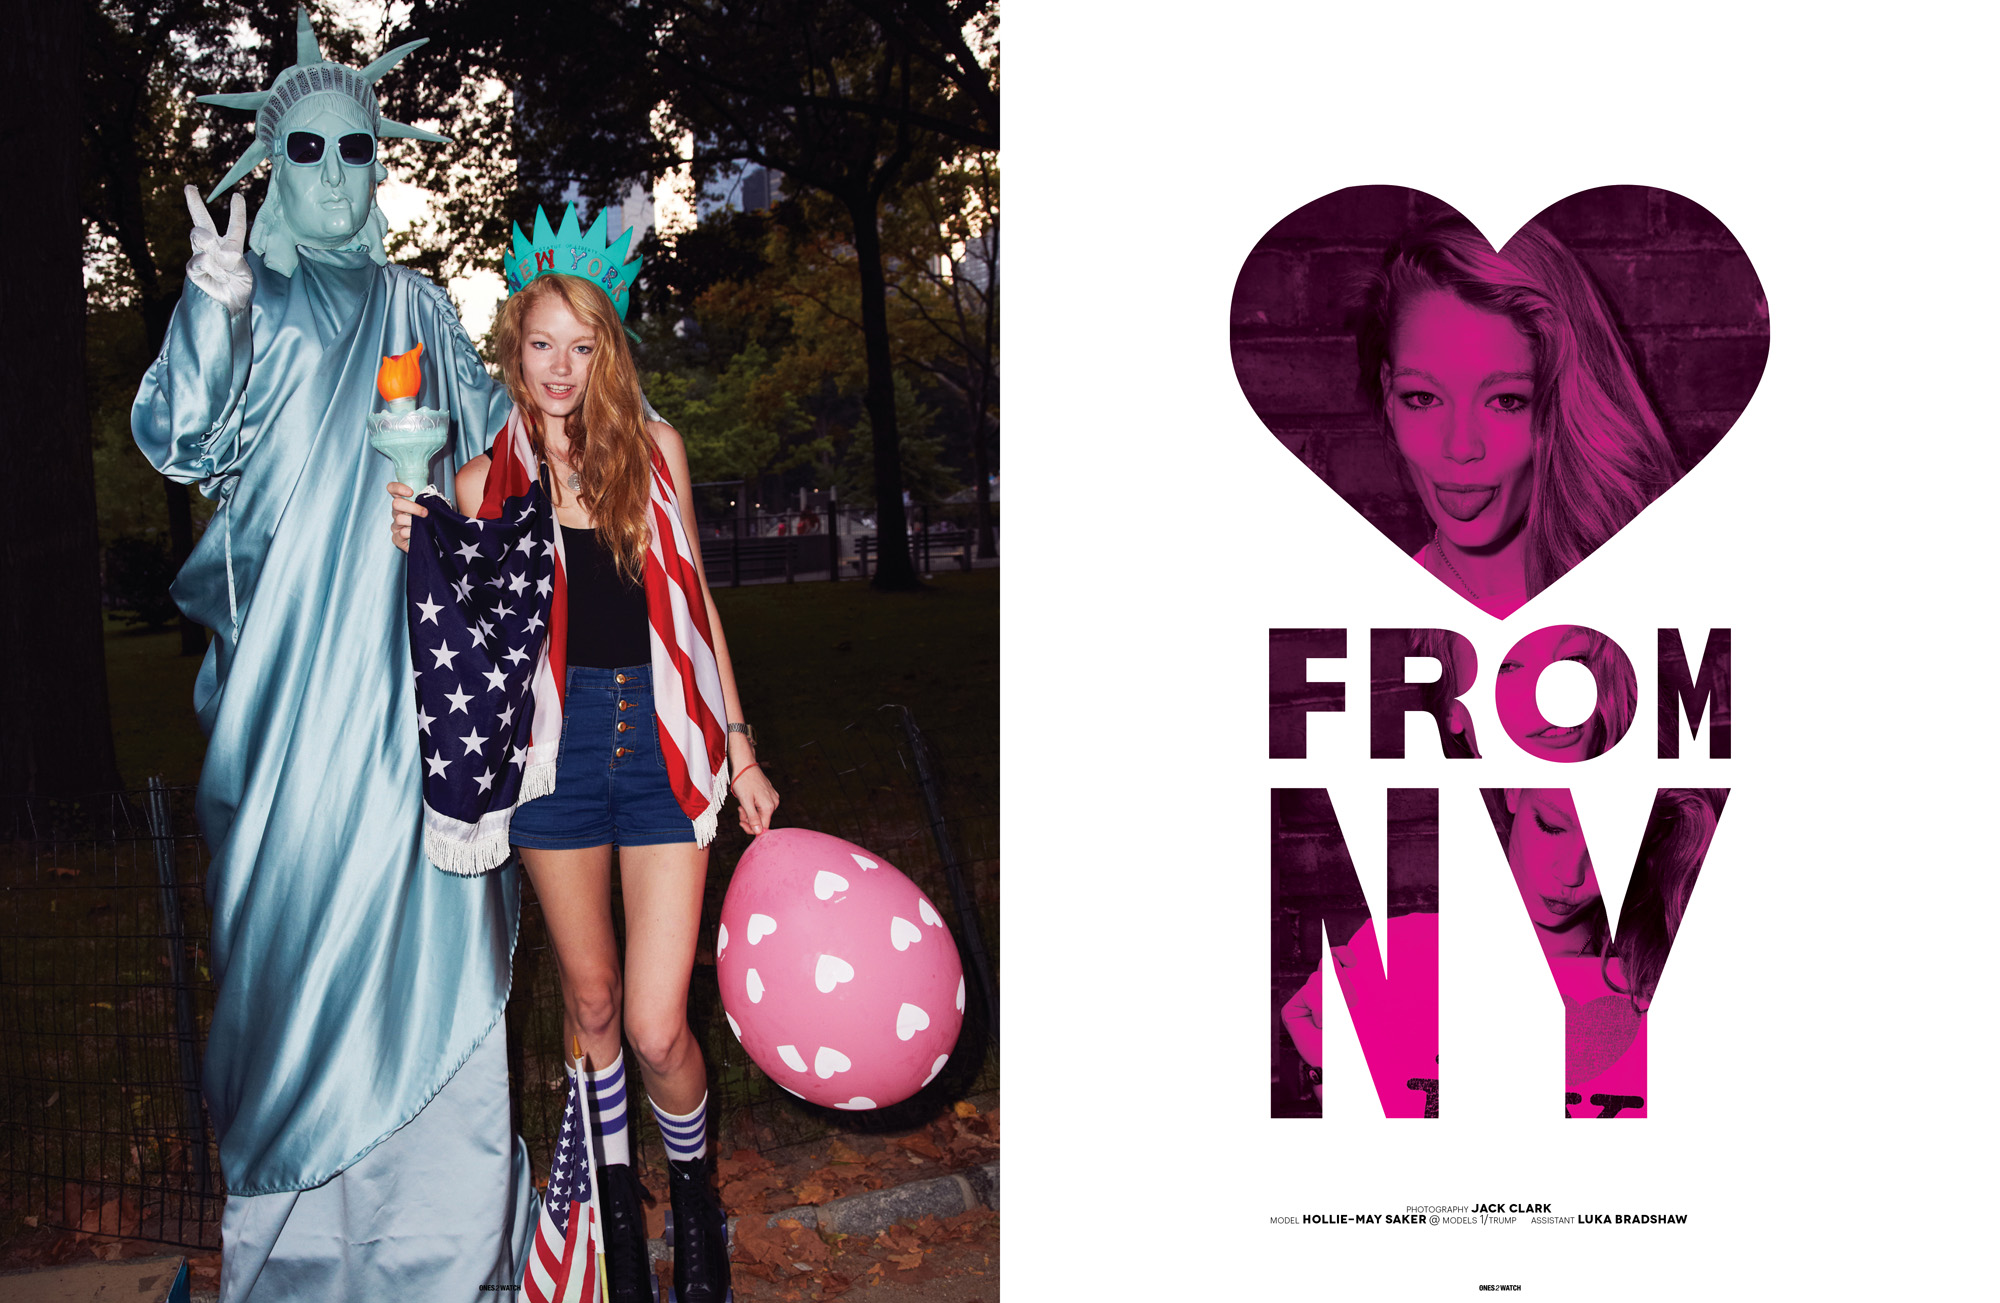 lovefromny